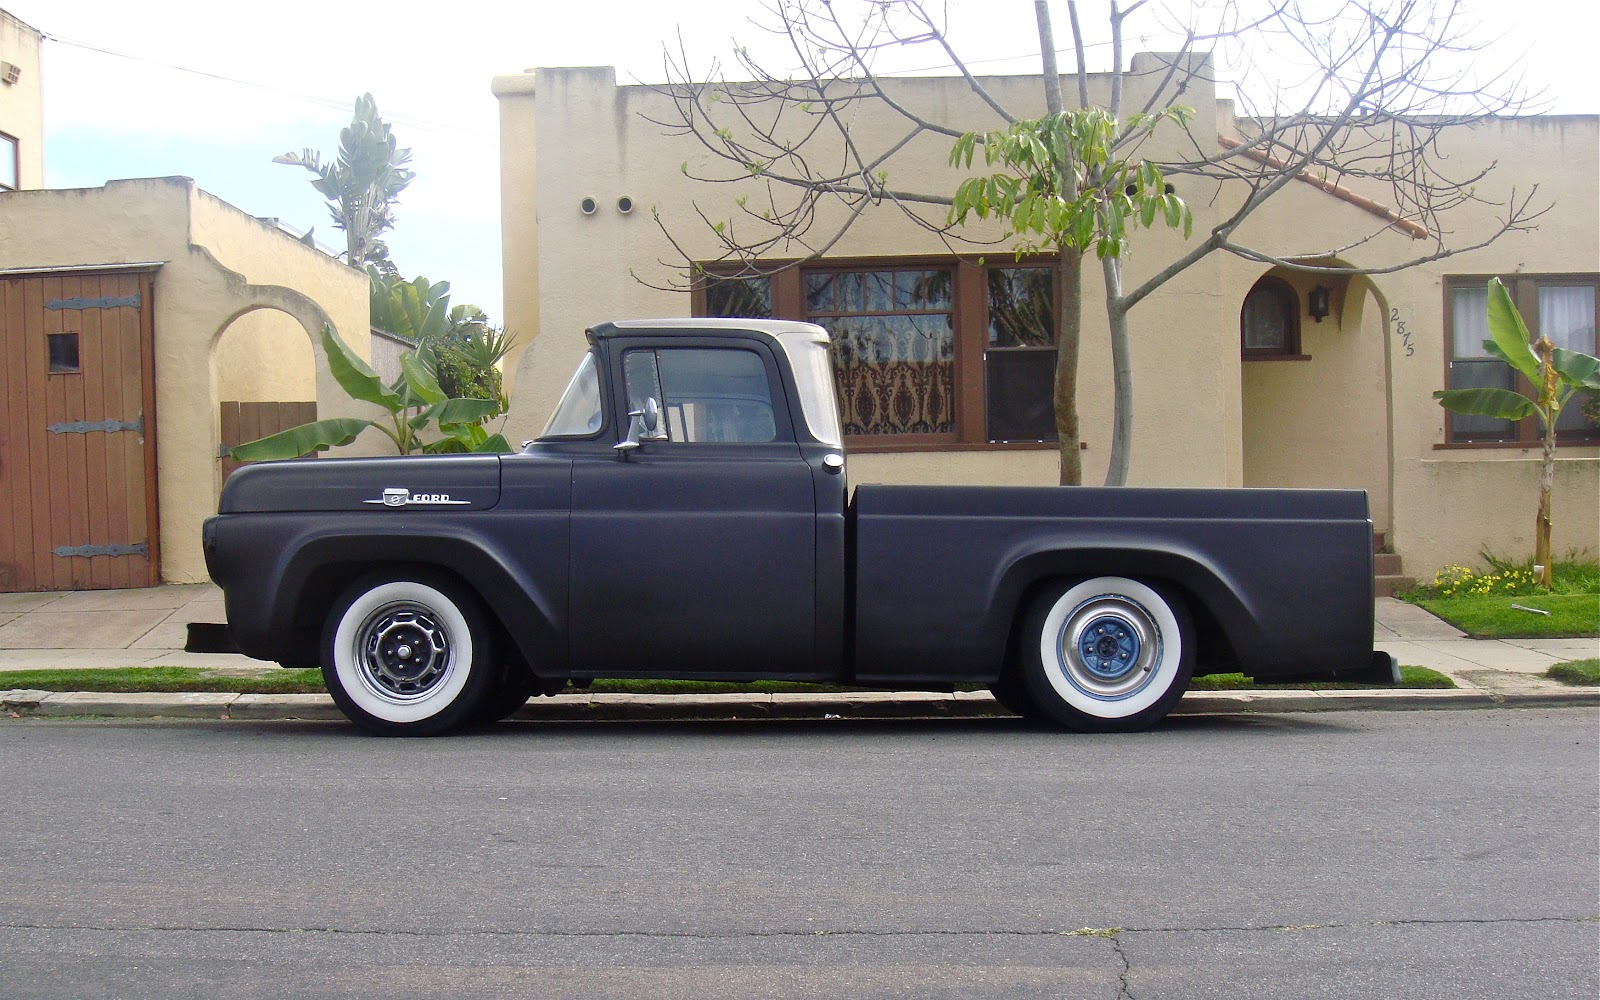 Ford f-100 1969 photo - 4